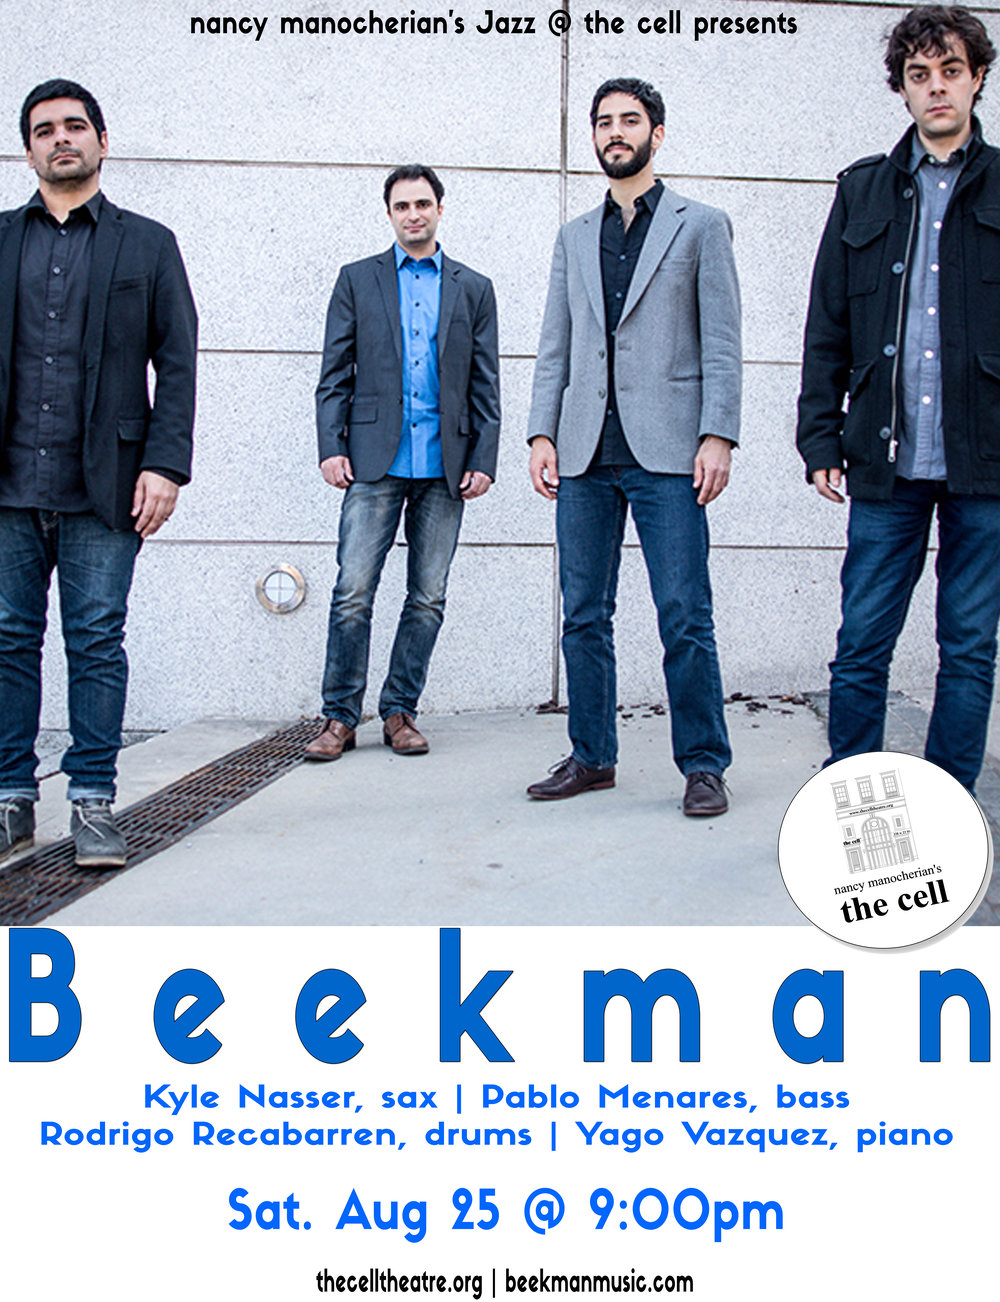 beeekman aug 25 web.jpg